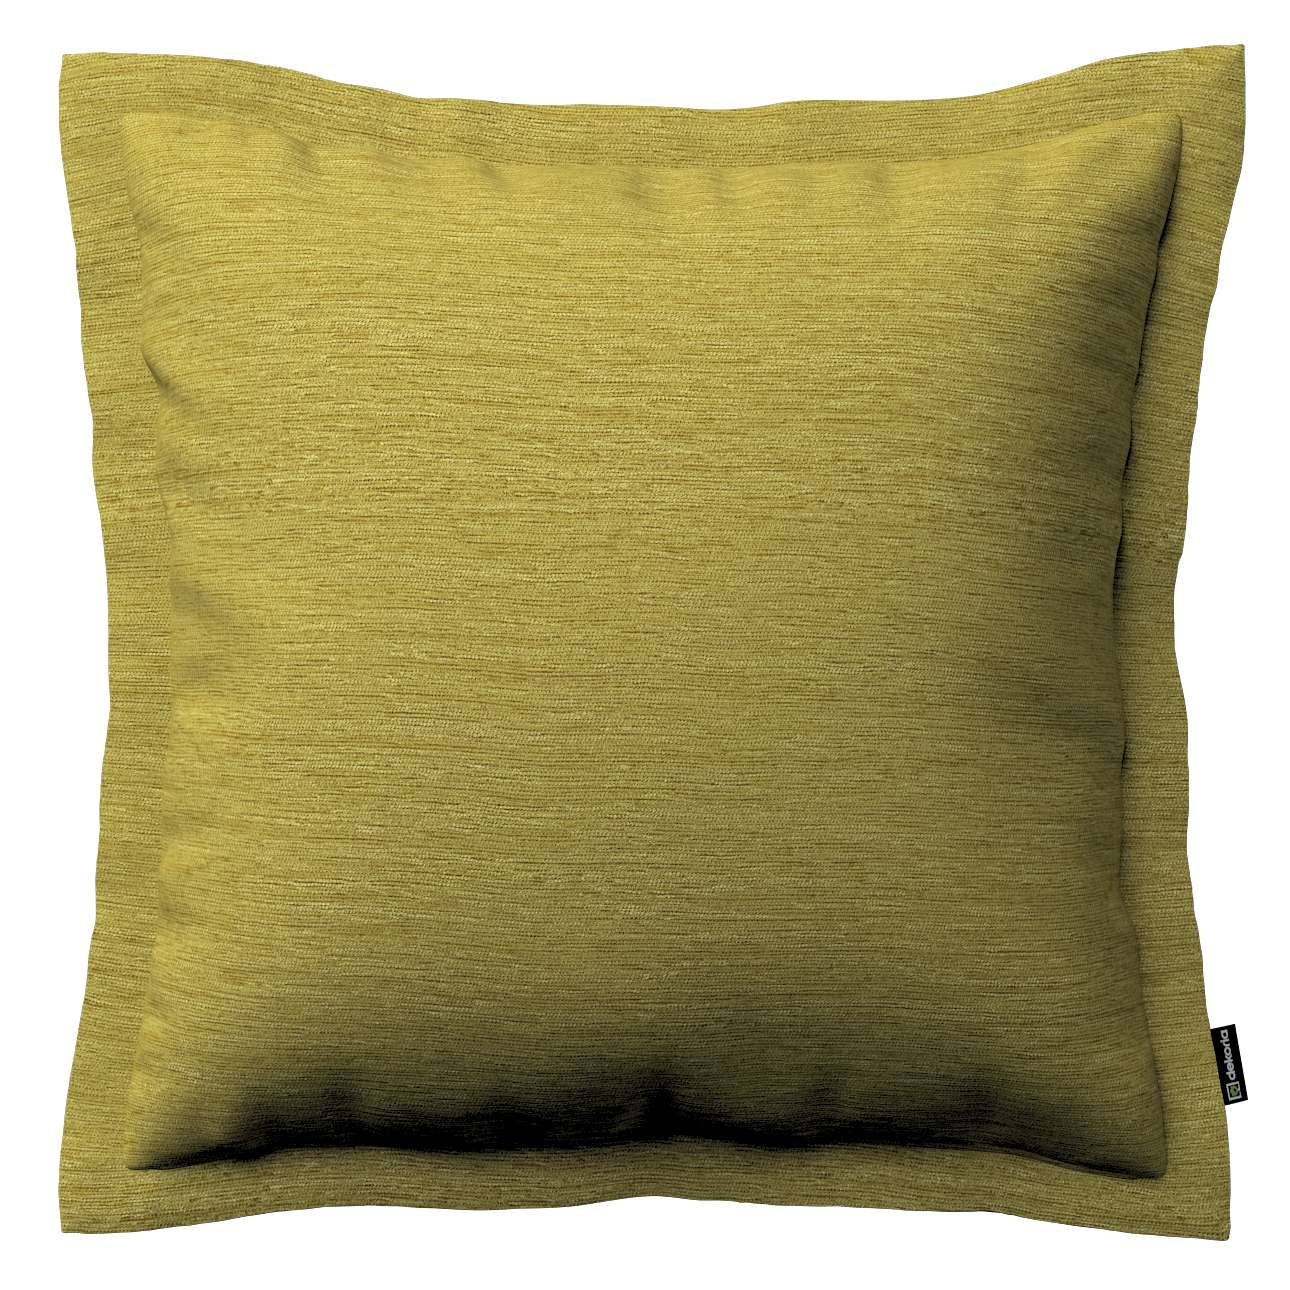 Mona cushion cover with border in collection Chenille, fabric: 160-47